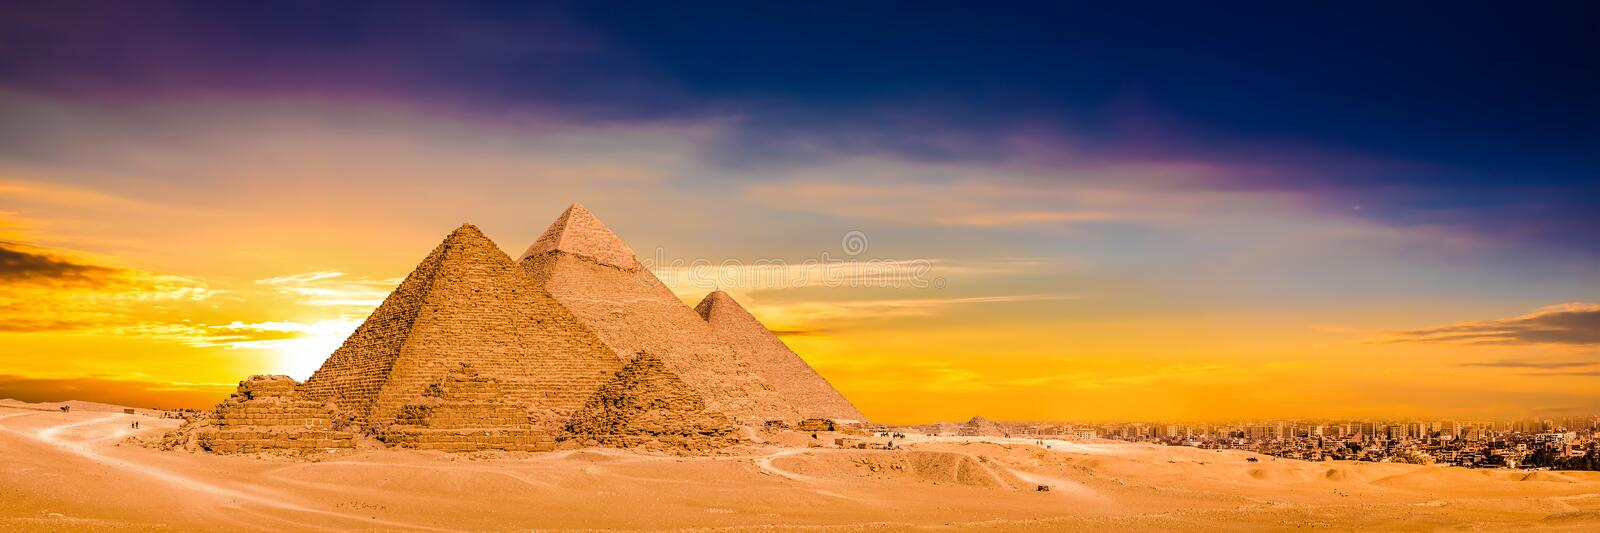 Great Pyramids of Giza, Egypt. Panorama of the Great Pyramids of Giza at sunset, Egypt royalty free stock images